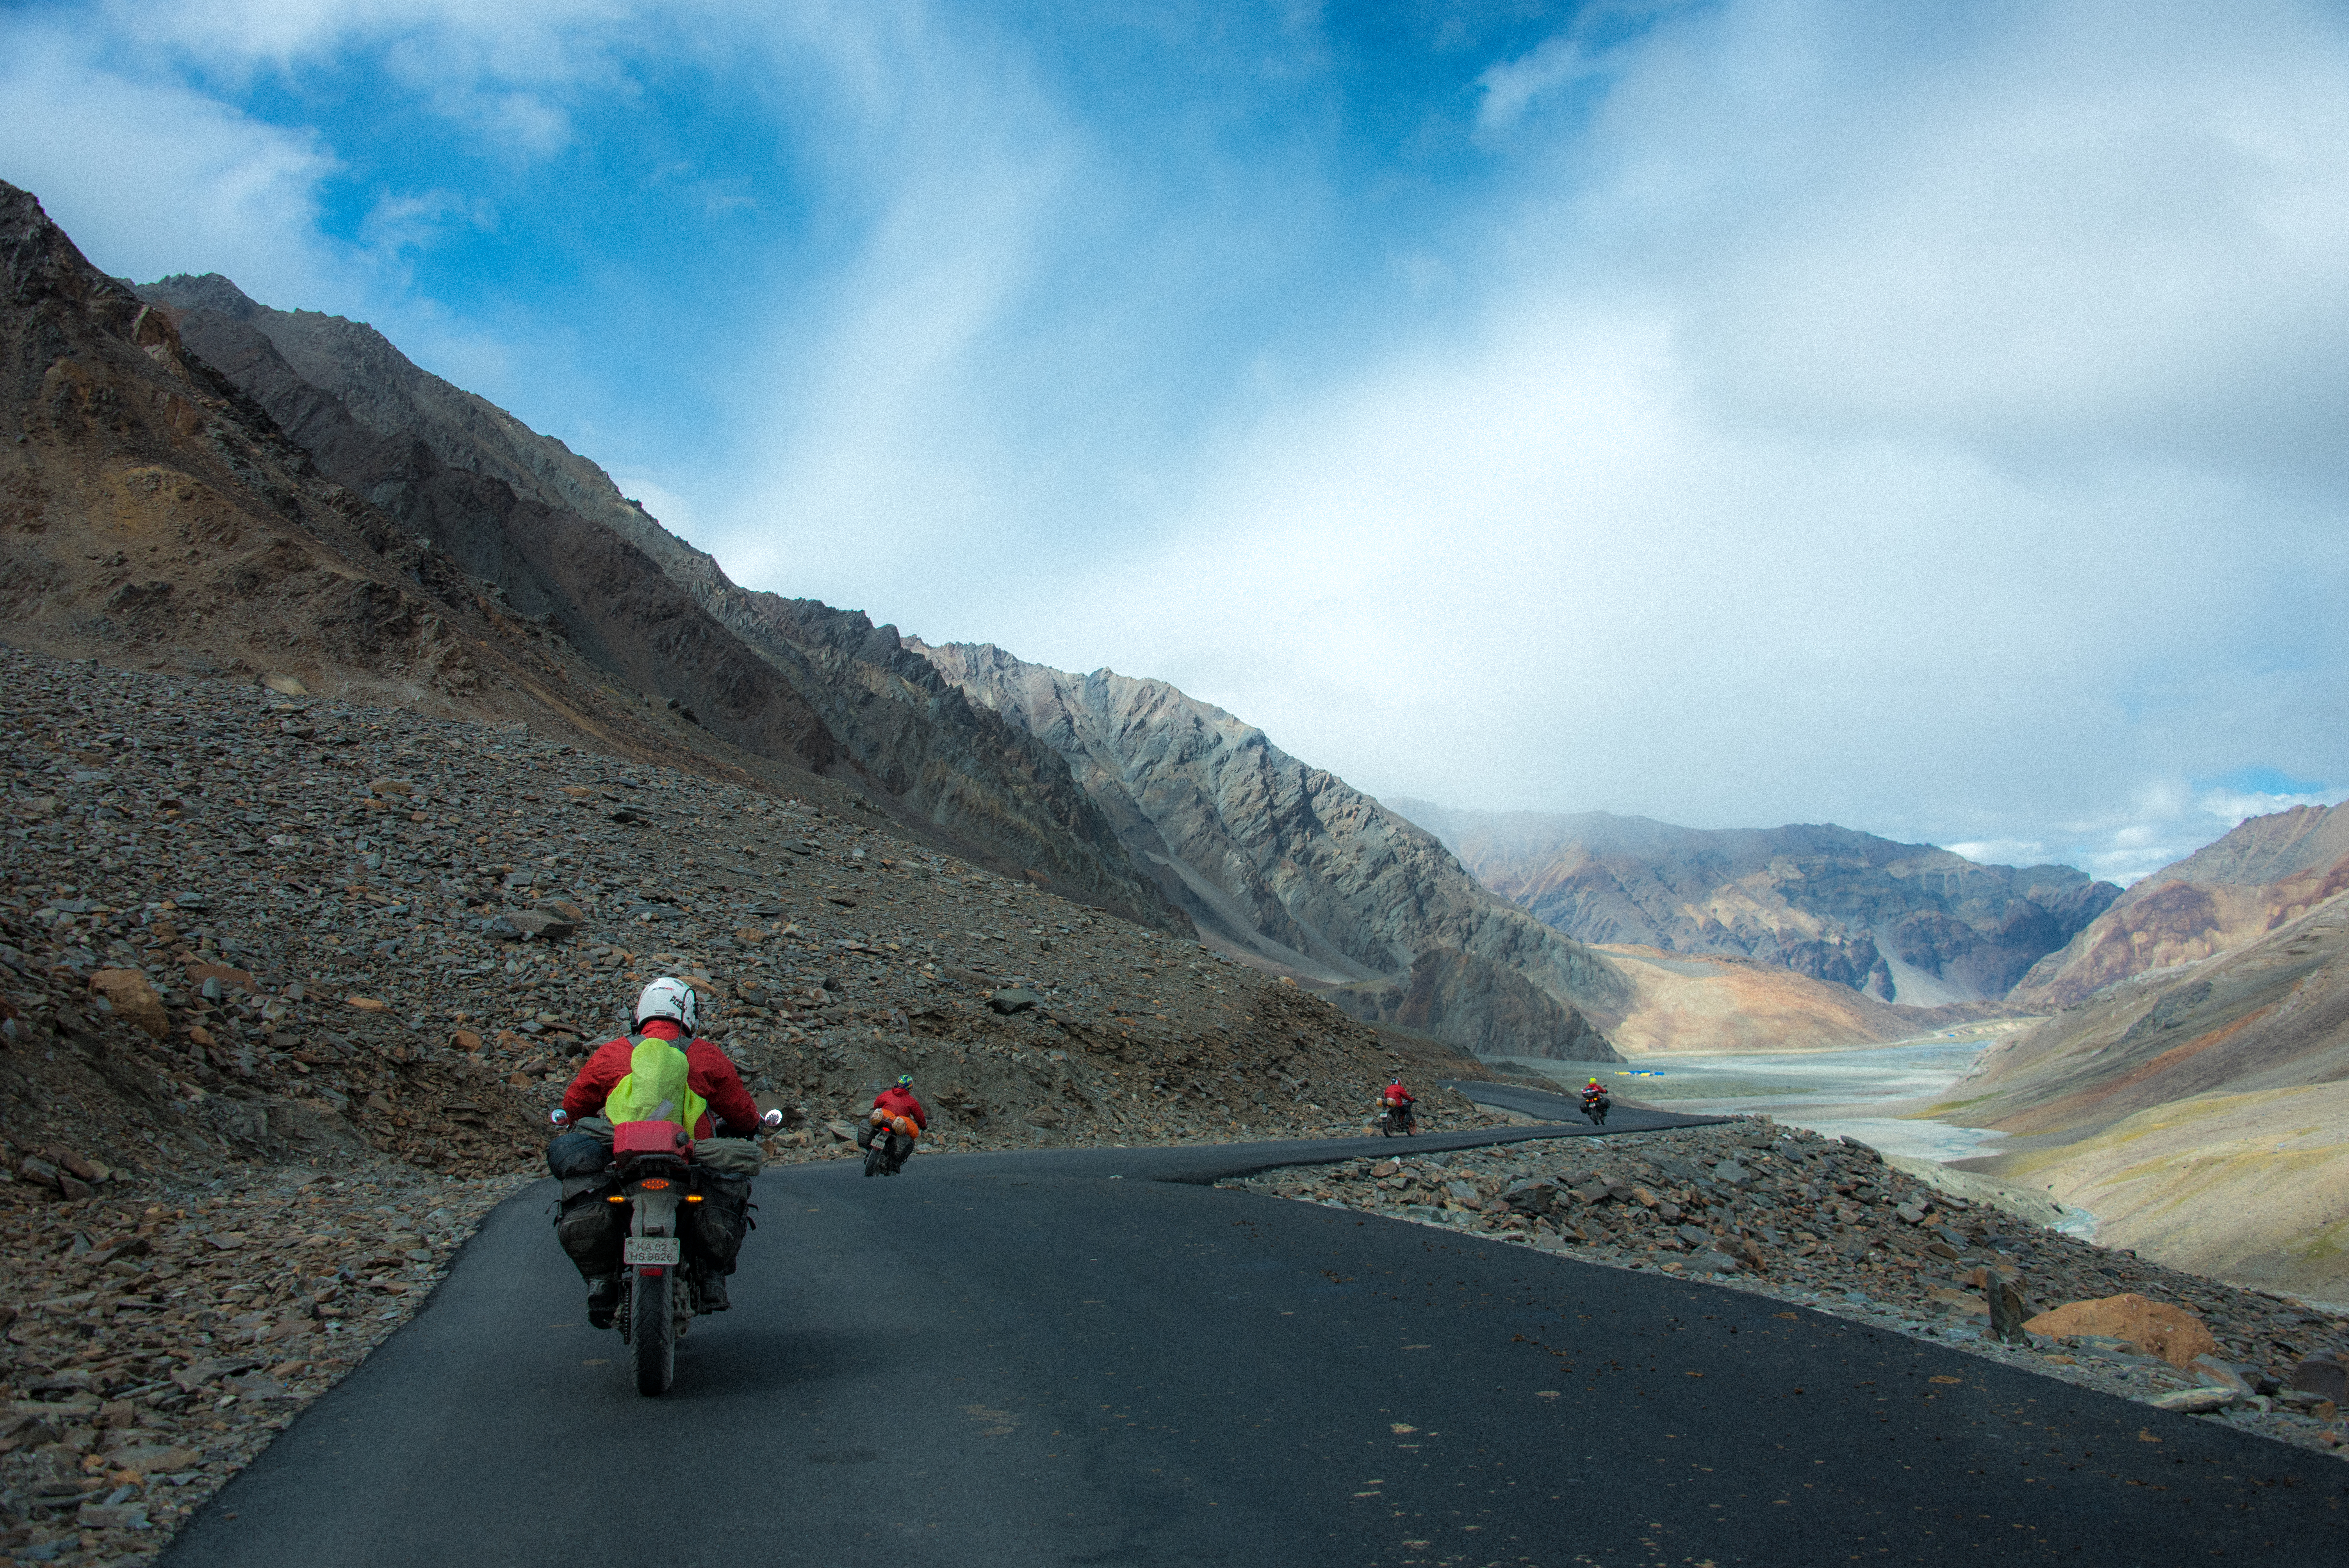 Bikers Enjoying The Dreamy Landscapes Of Himalayas